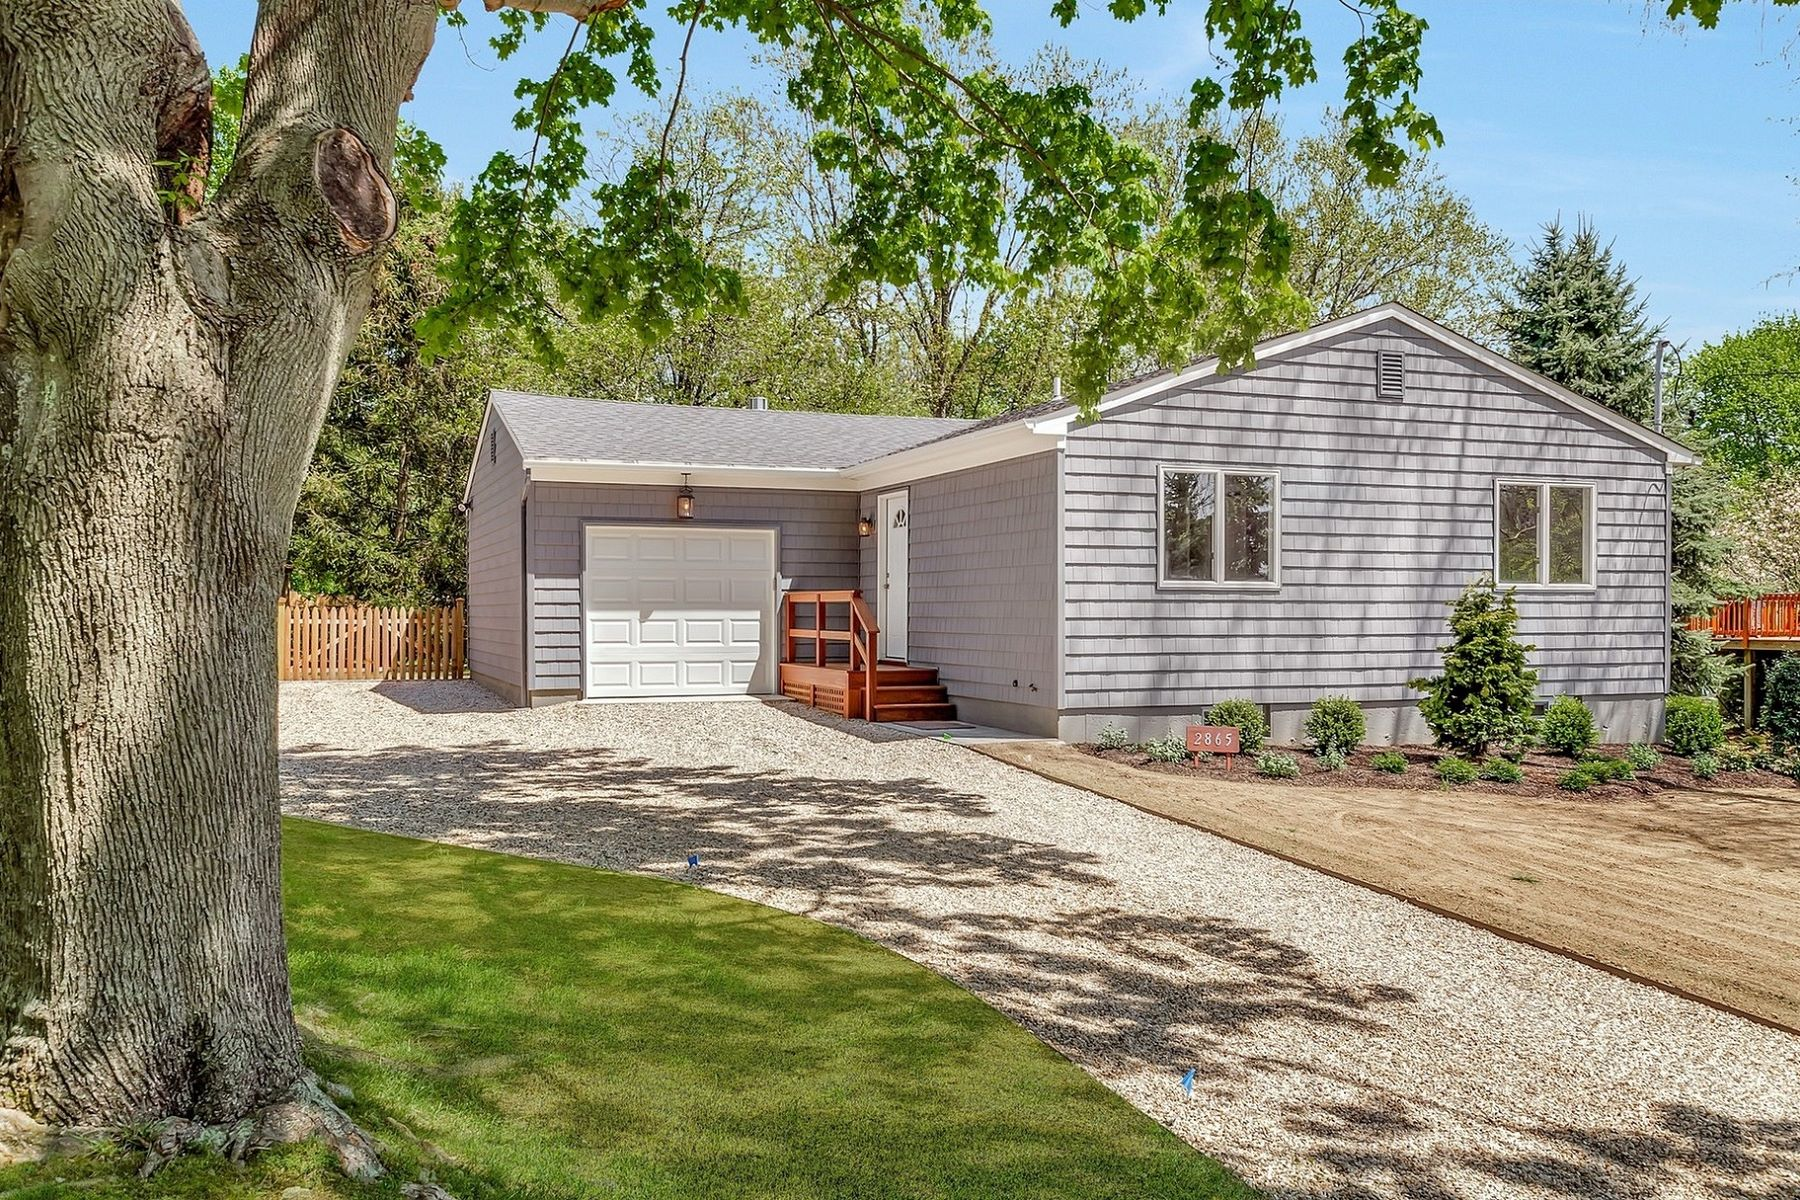 Single Family Home for Active at Southold 2865 South Harbor Rd Southold, New York 11971 United States